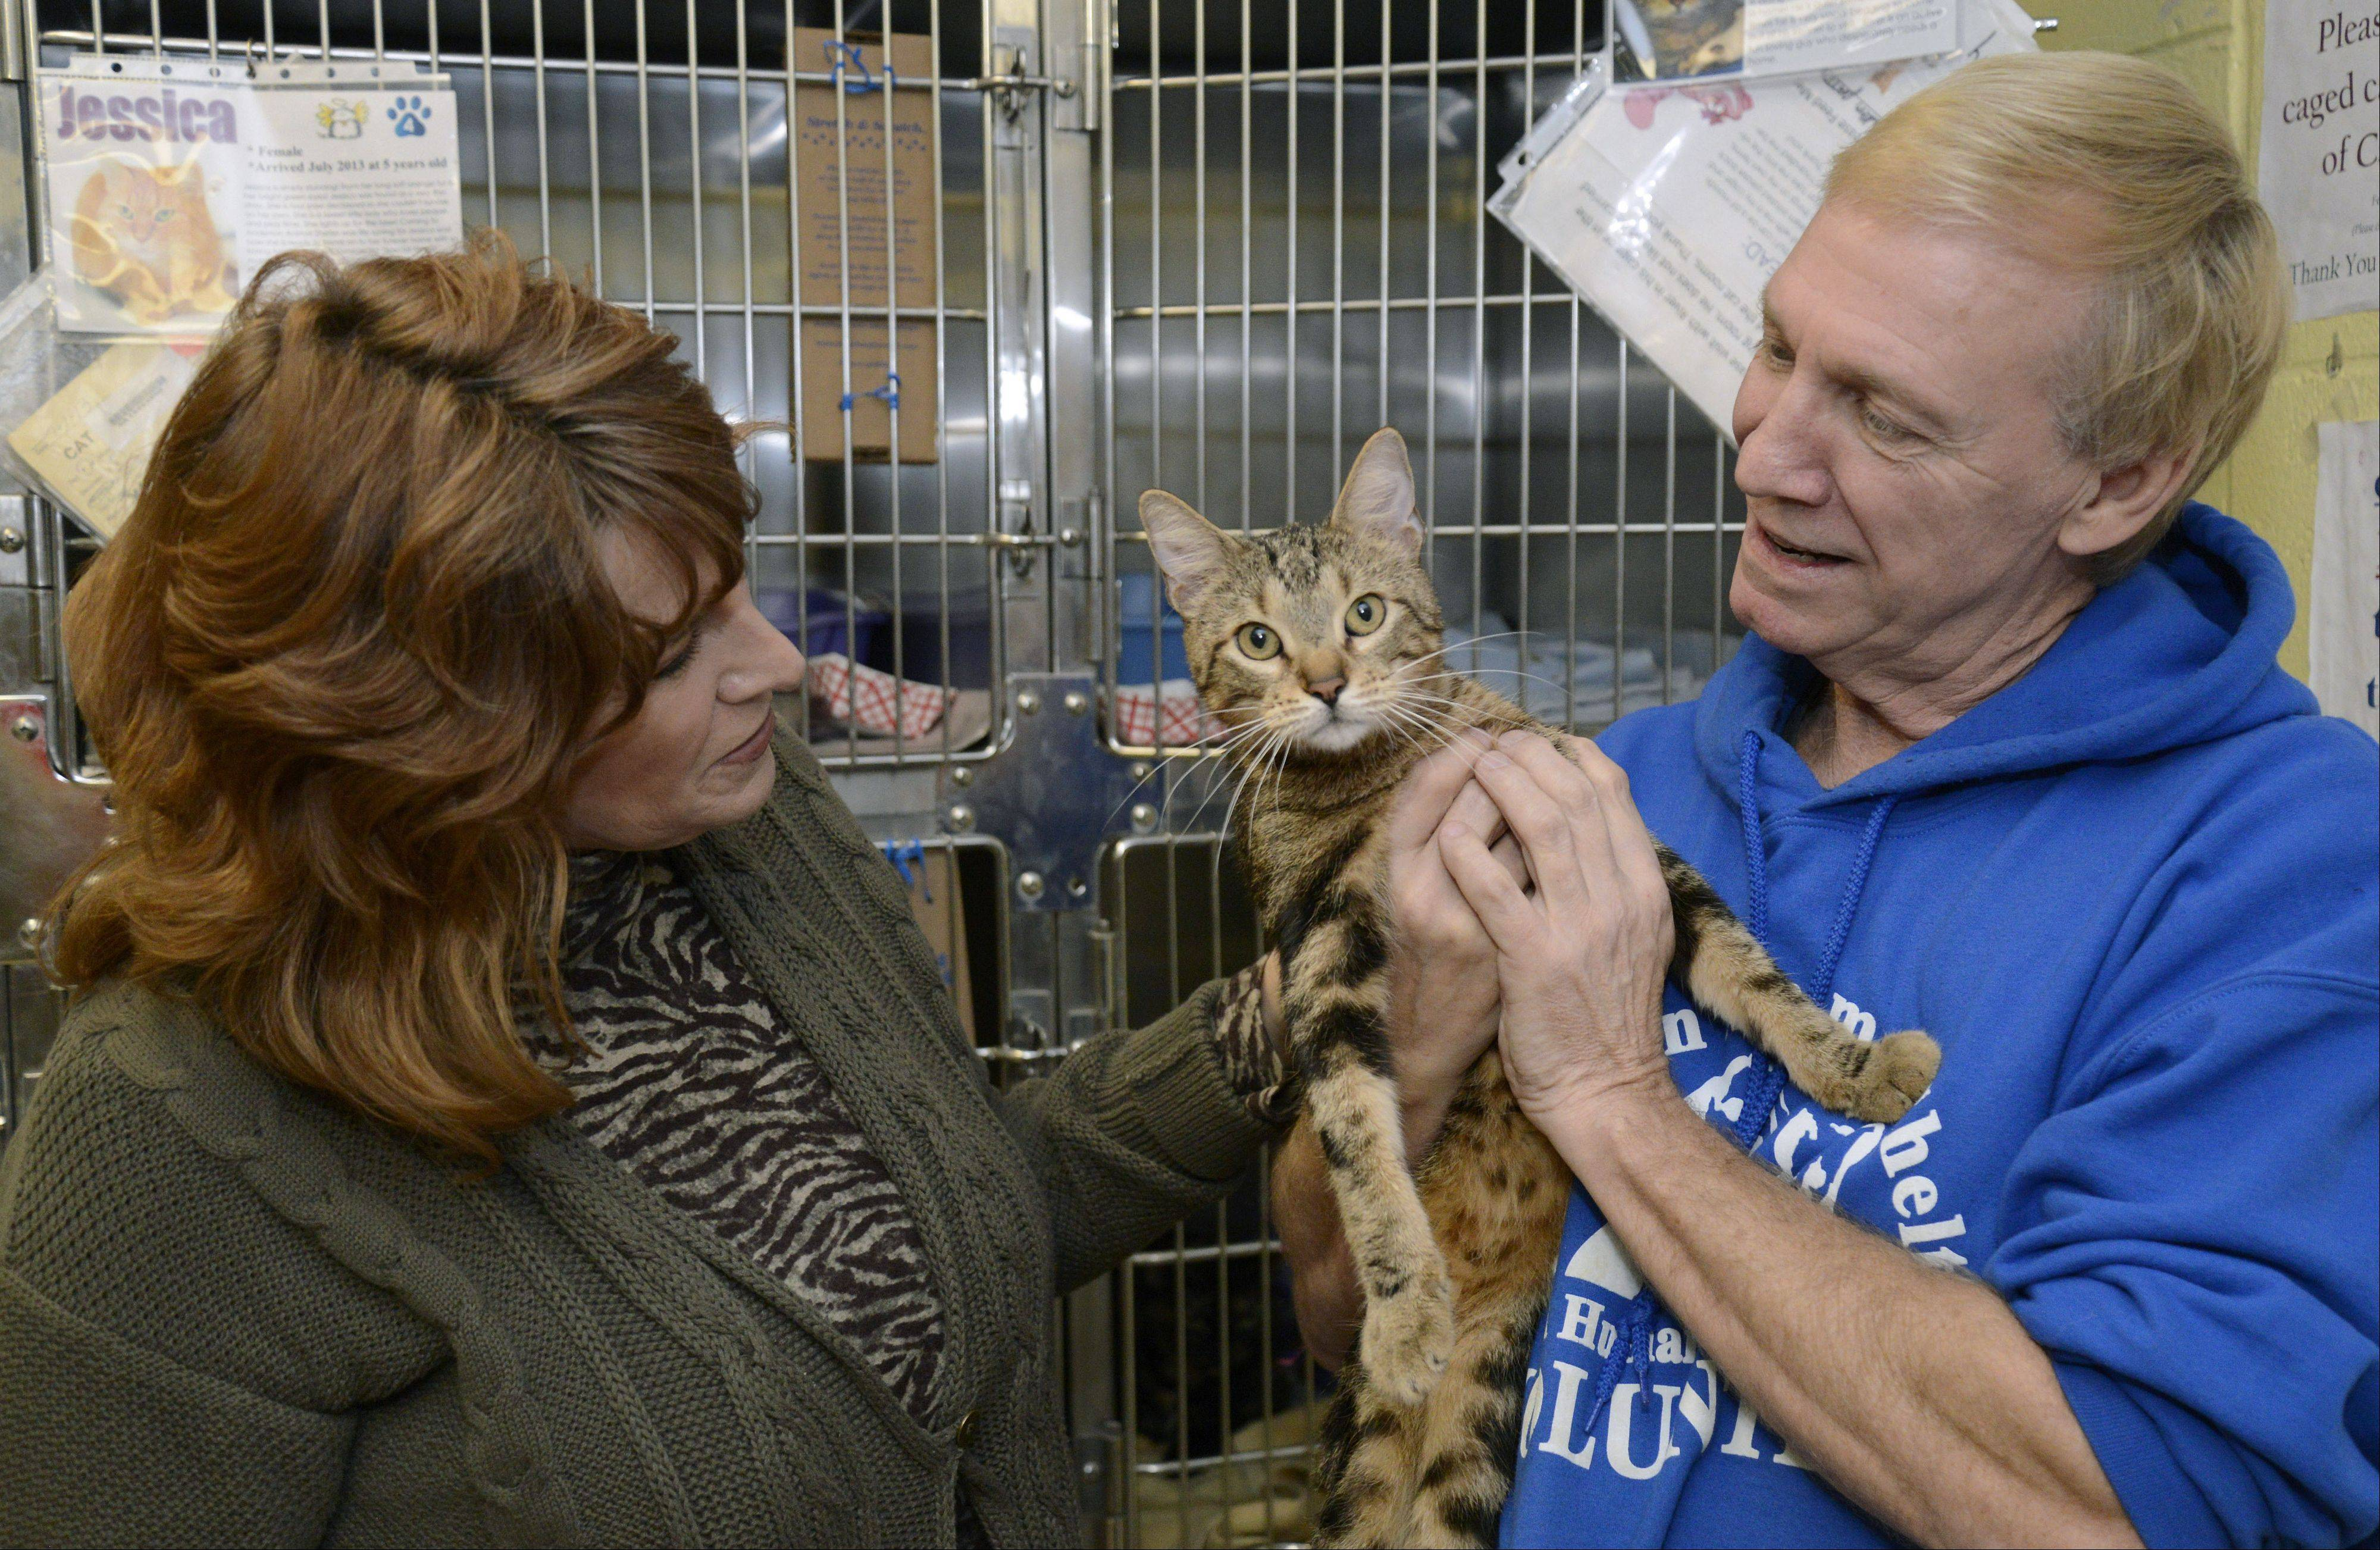 Randy Sandman of Elgin and his wife, Jan, interact with River, a cat available for adoption from Anderson Animal Shelter. Randy has been a volunteer at the South Elgin shelter for about a year.